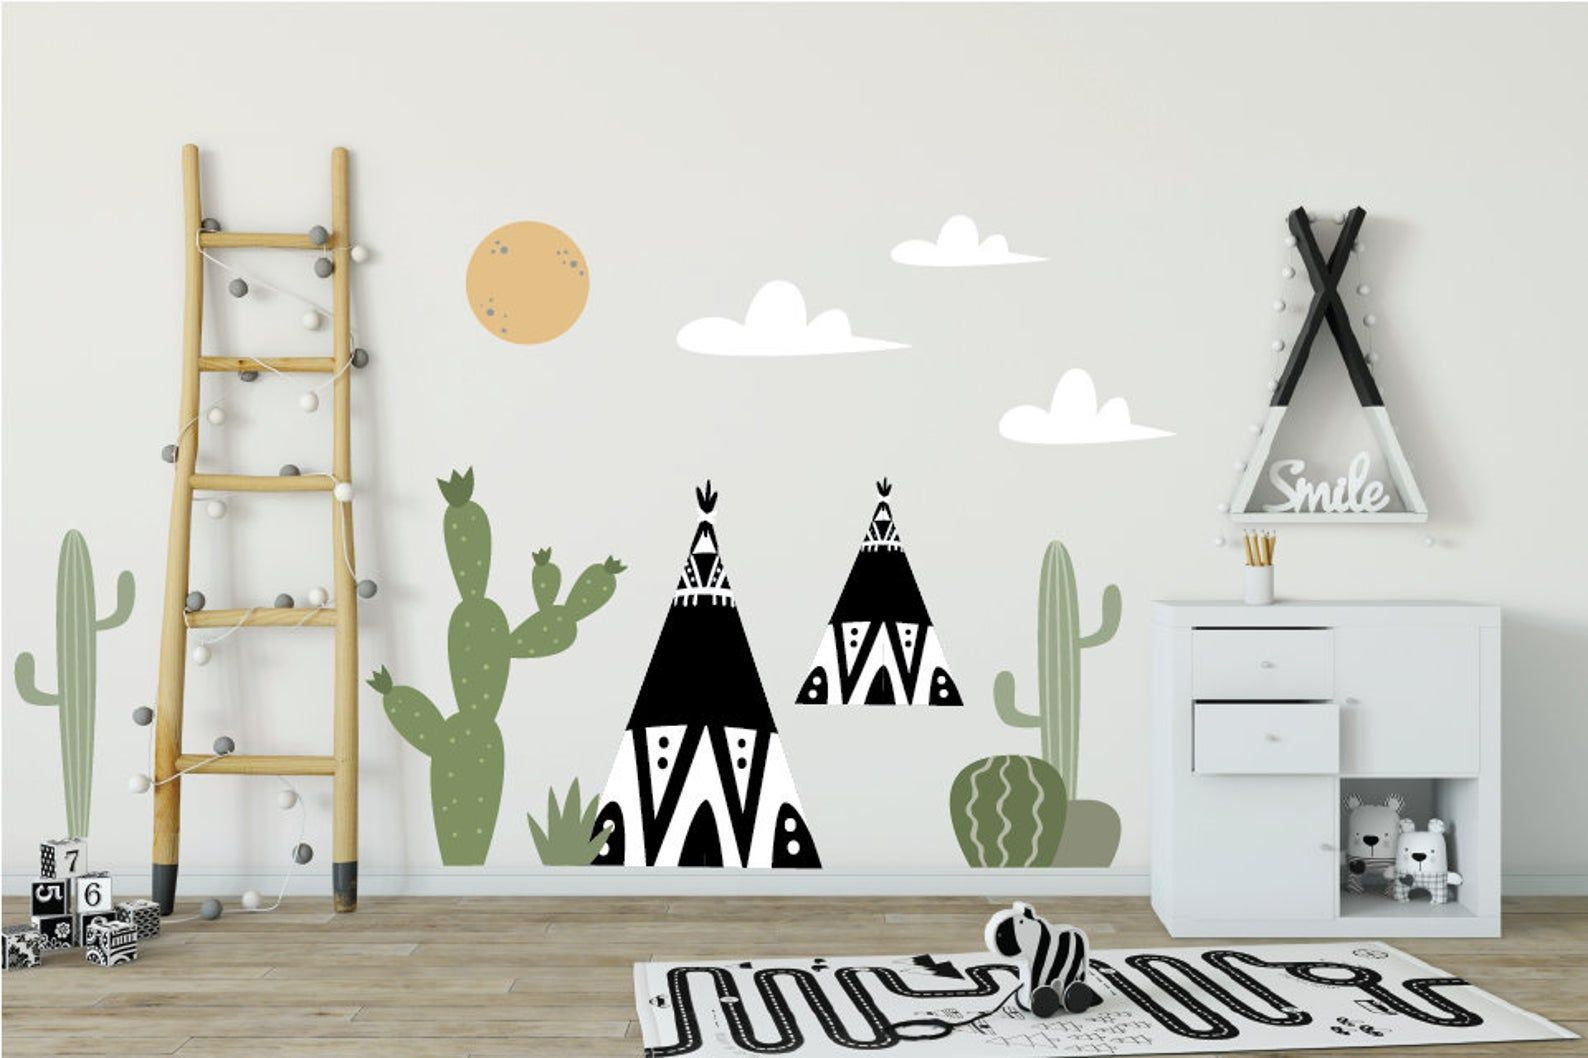 Cactus Wall Art Teepee Moon Cloud Wall Decals Modern Nursery Etsy In 2020 Cloud Wall Decal Kids Room Design Childrens Wall Decals